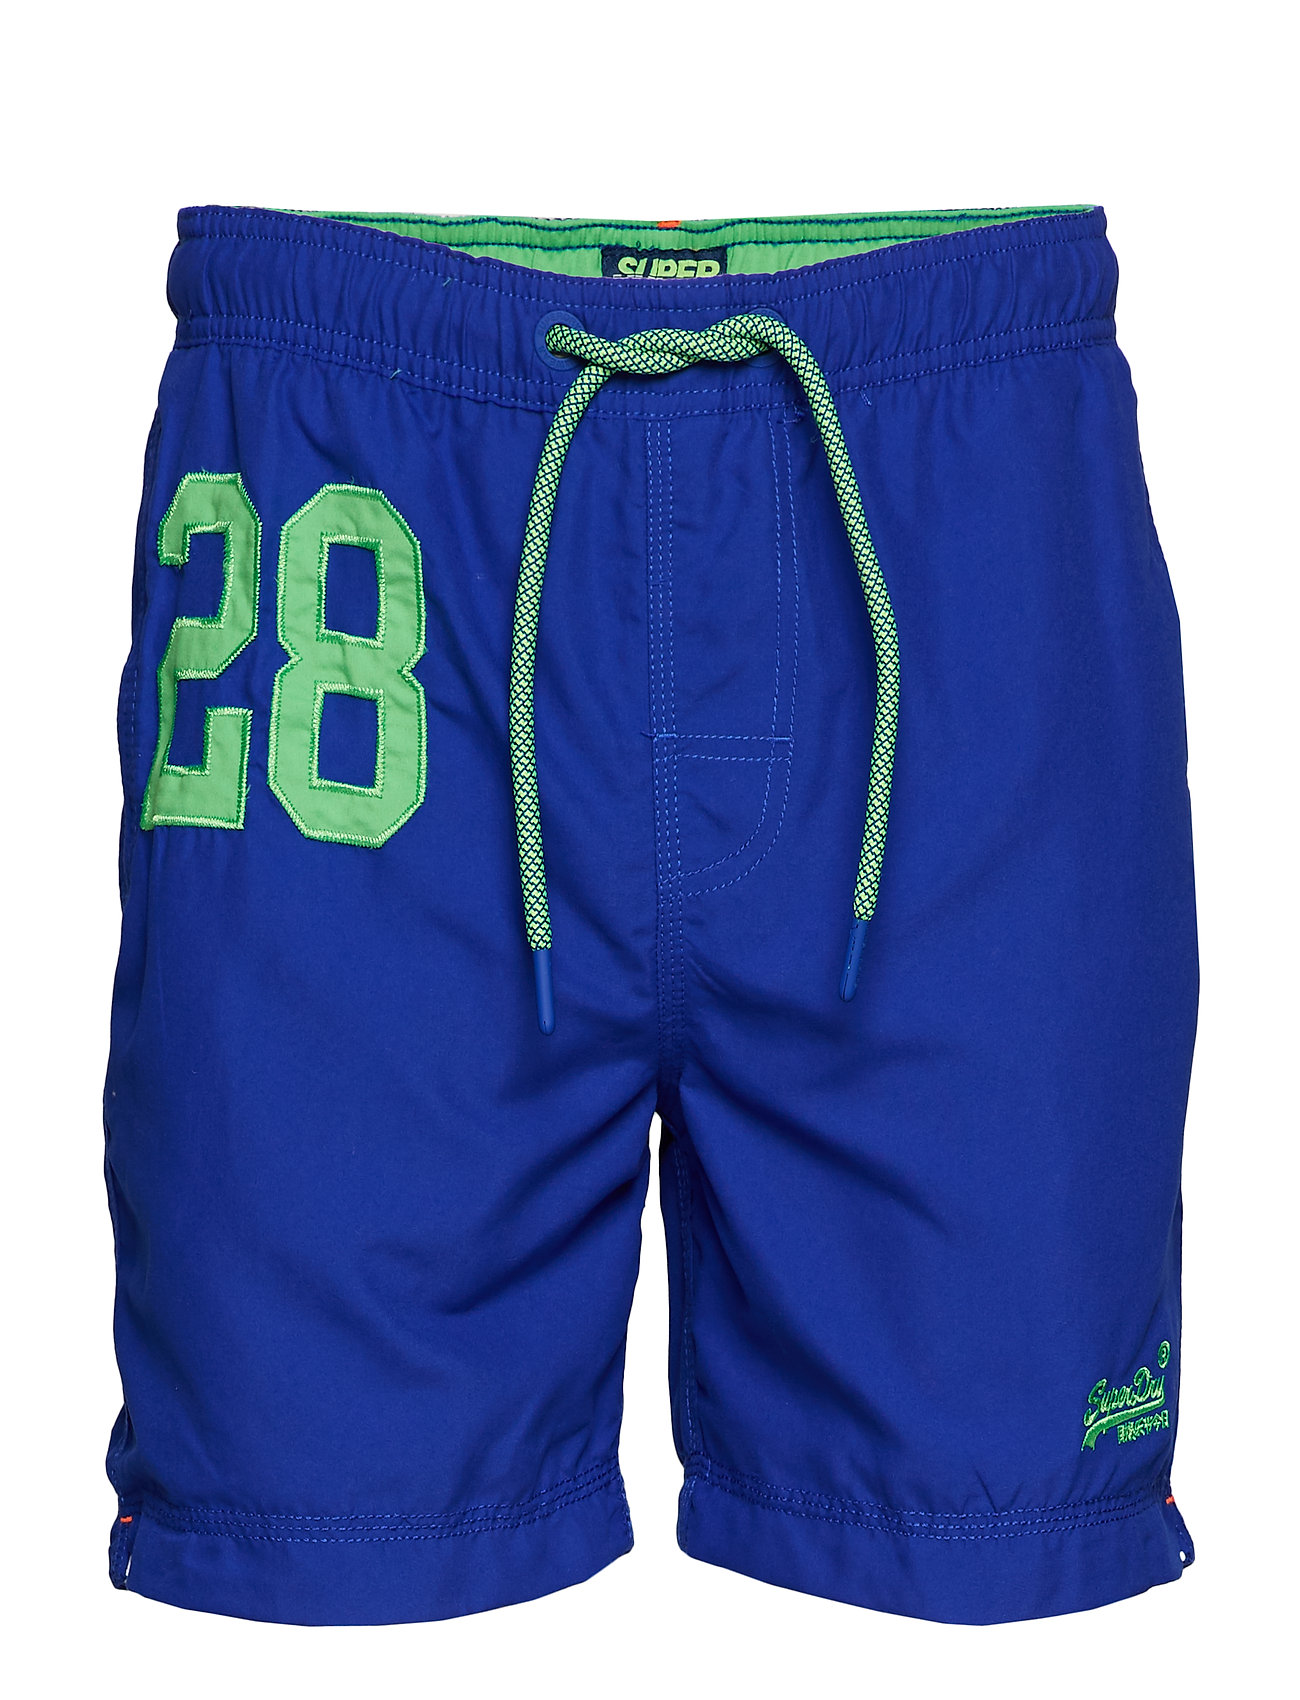 Polo Swim CobaltSuperdry Shortracer Water Shortracer CobaltSuperdry Water Swim Polo Water UVpqSMz